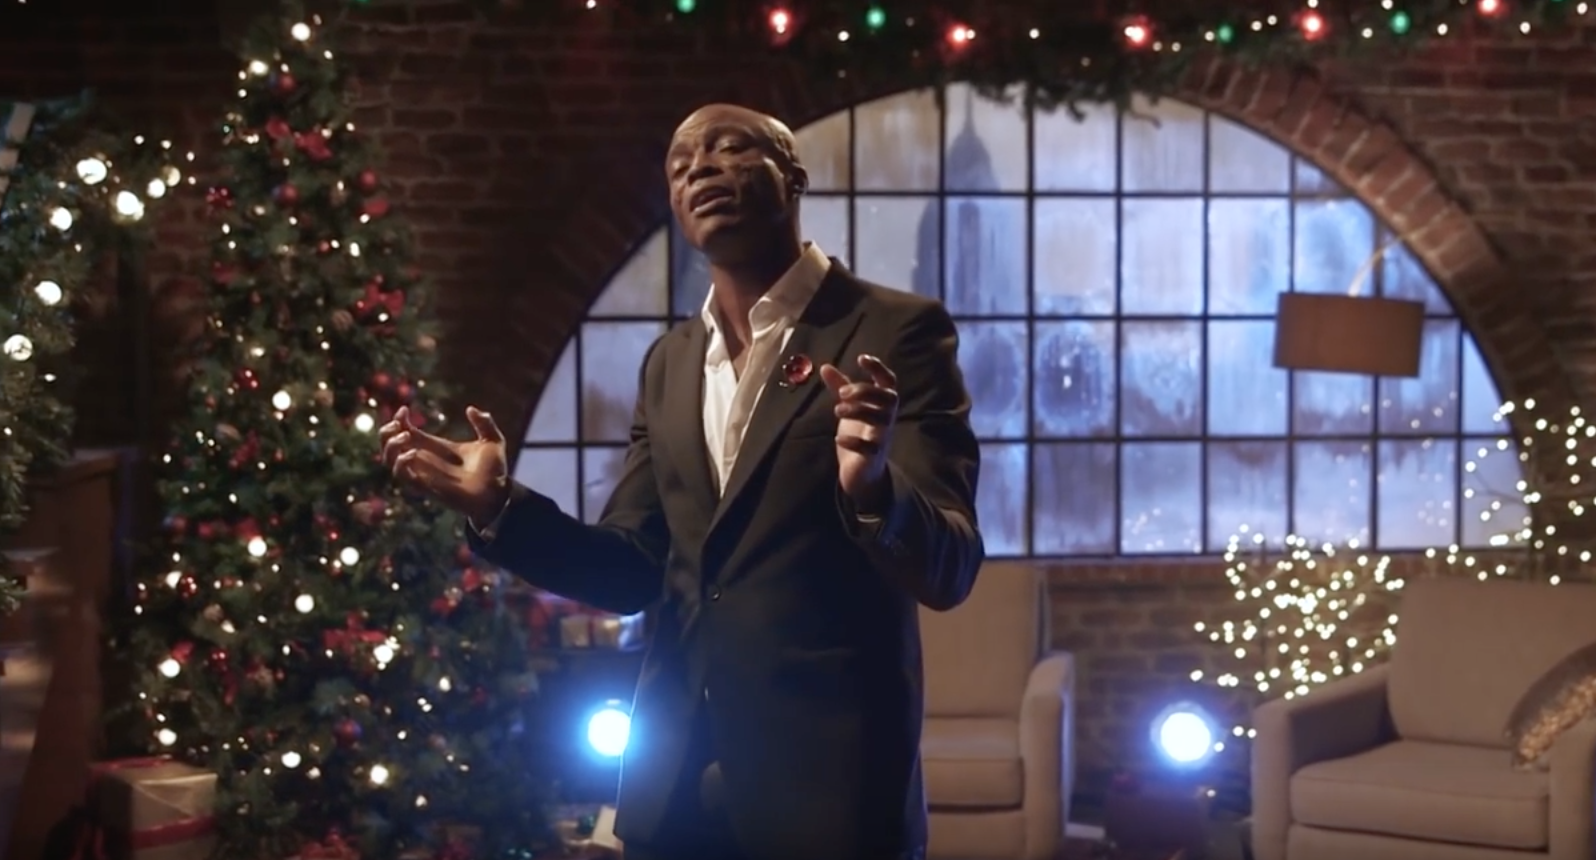 This Christmas - By Seal